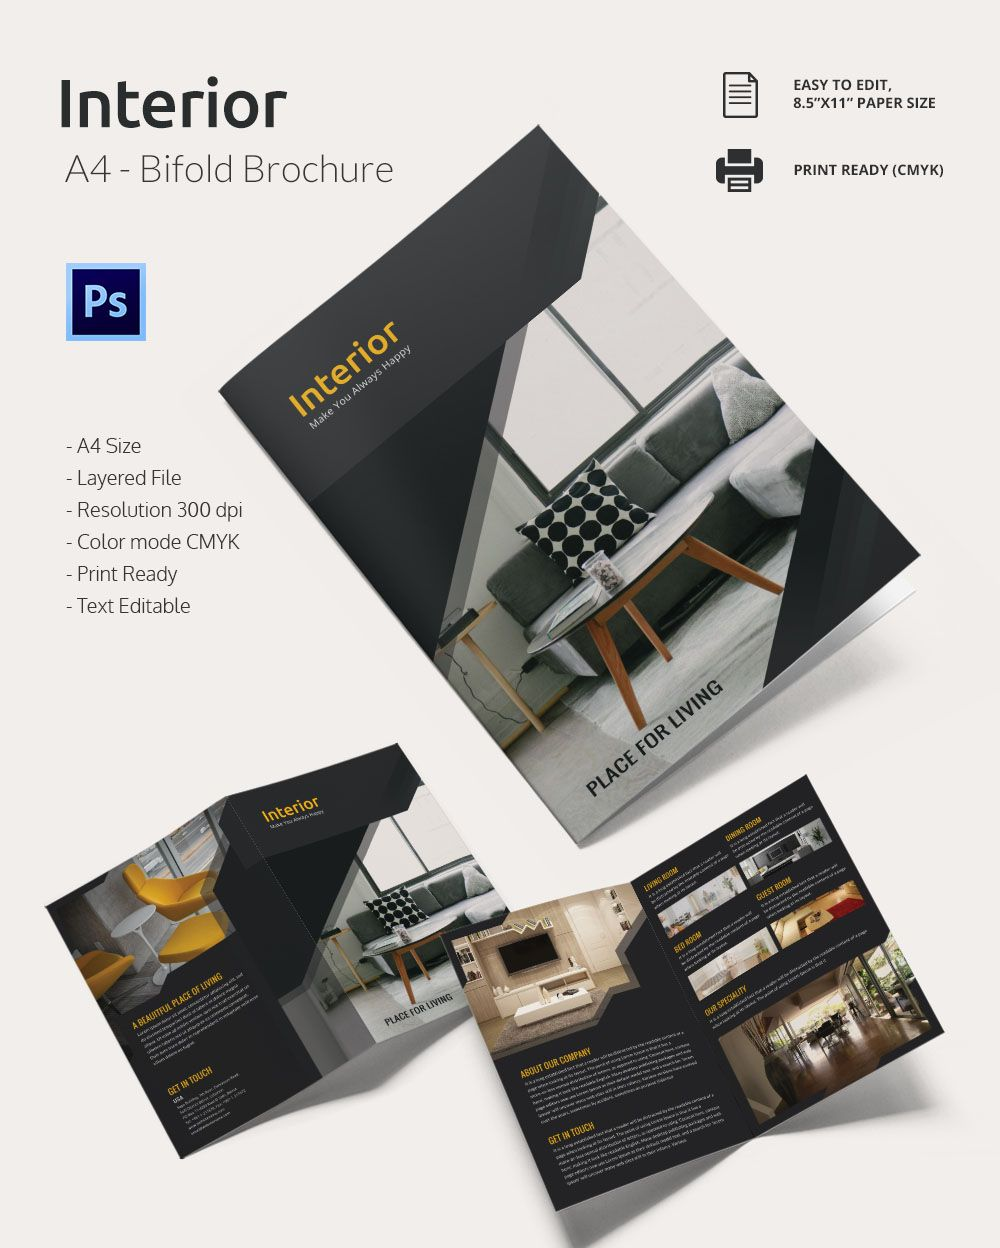 Interior Design Brochure 20 Free Psd Eps Indesign